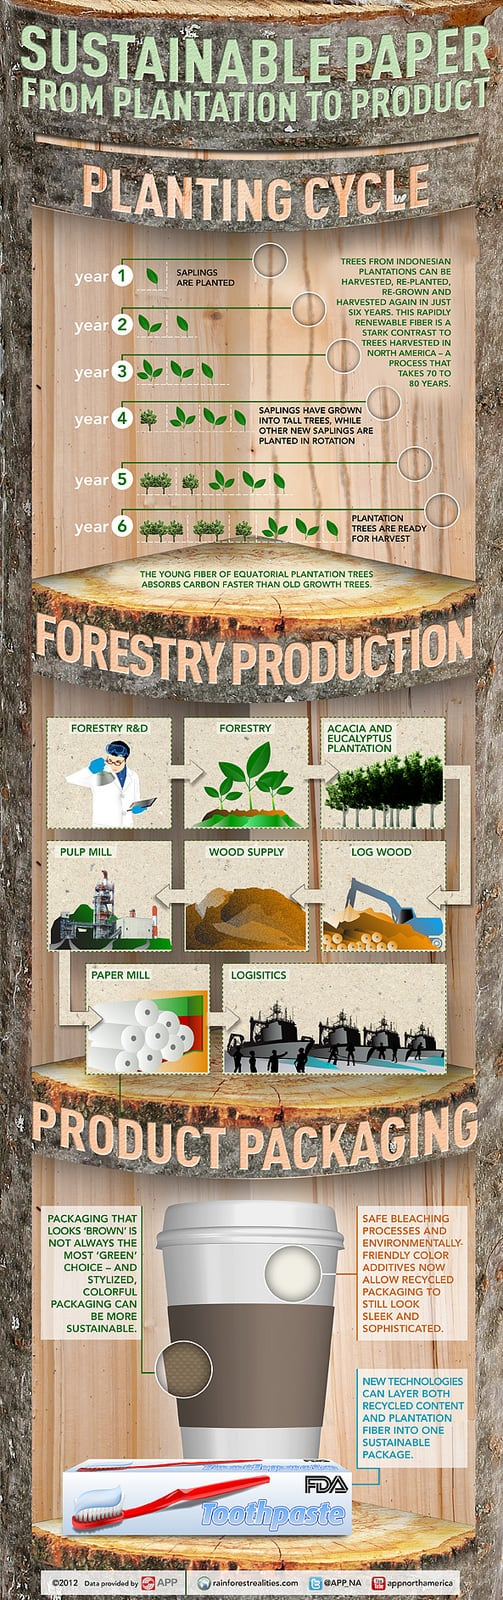 Sustainable Paper from Plantation to Product Infographic